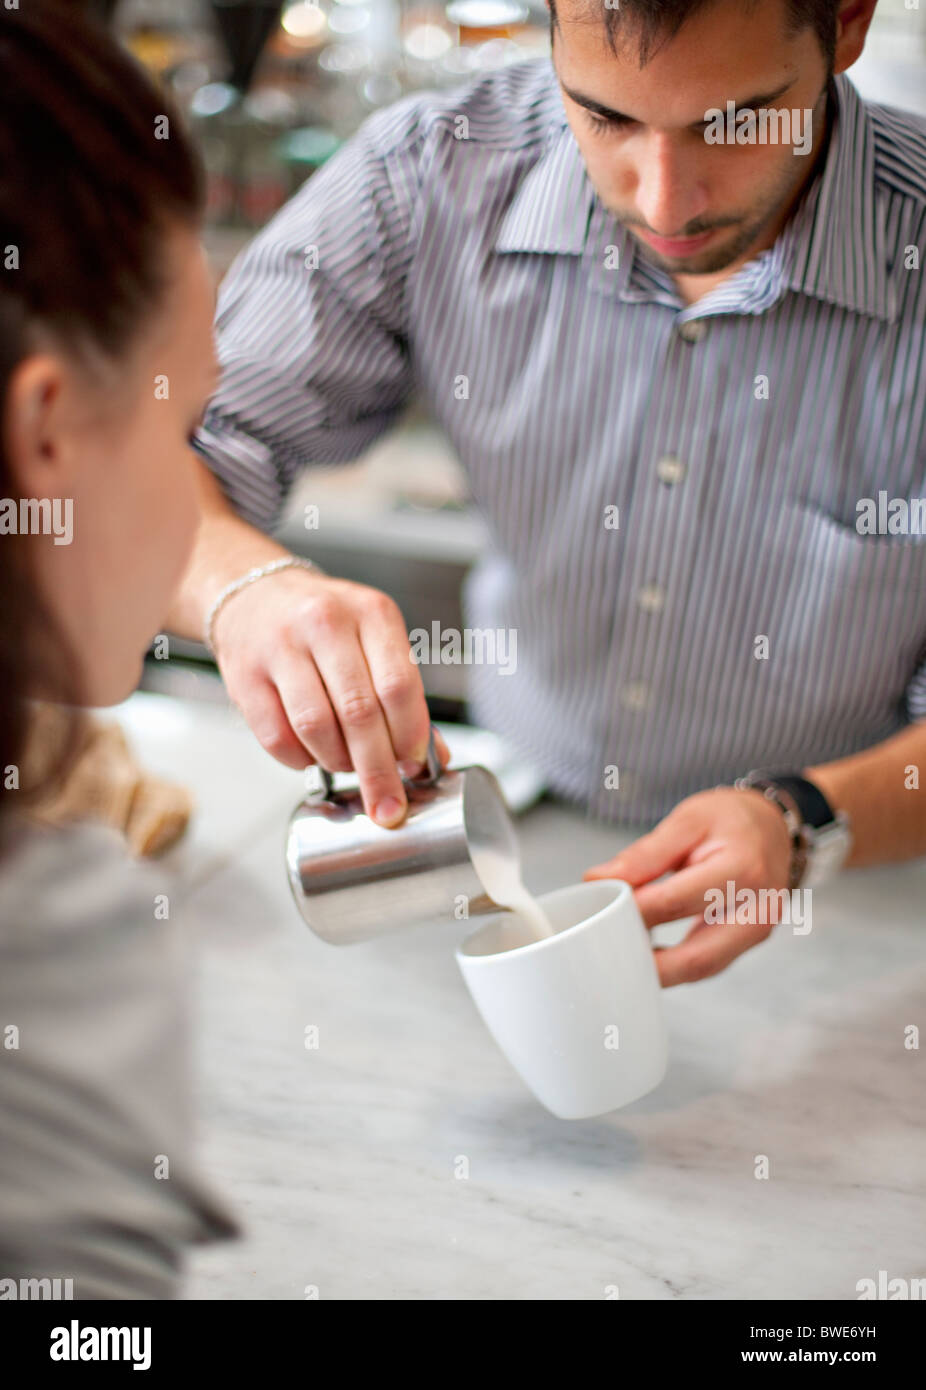 Barkeeper making coffee for woman - Stock Image